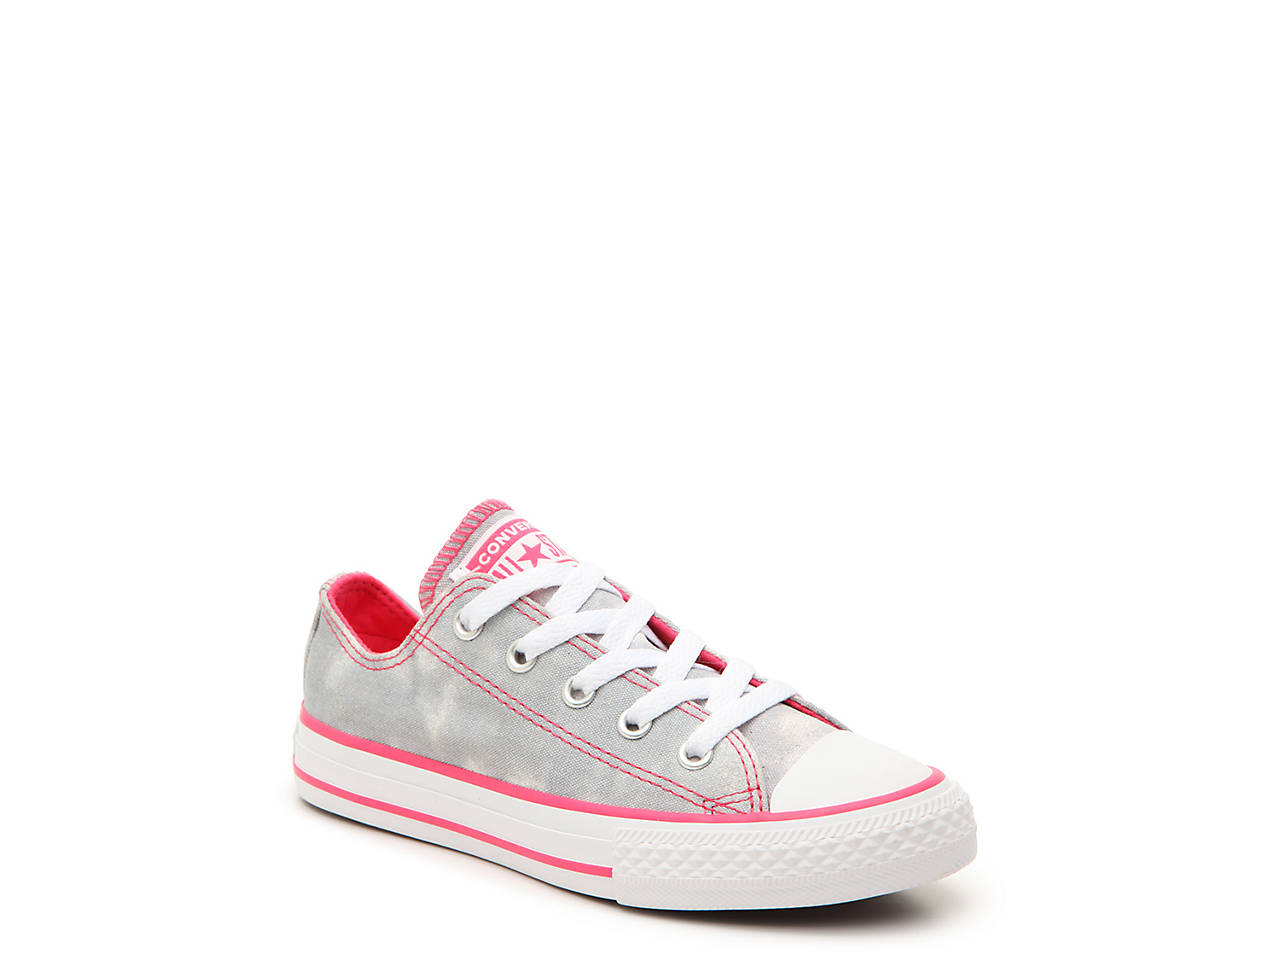 c272e69f282c Converse Chuck Taylor All Star Tie Dye Toddler   Youth Sneaker Kids ...